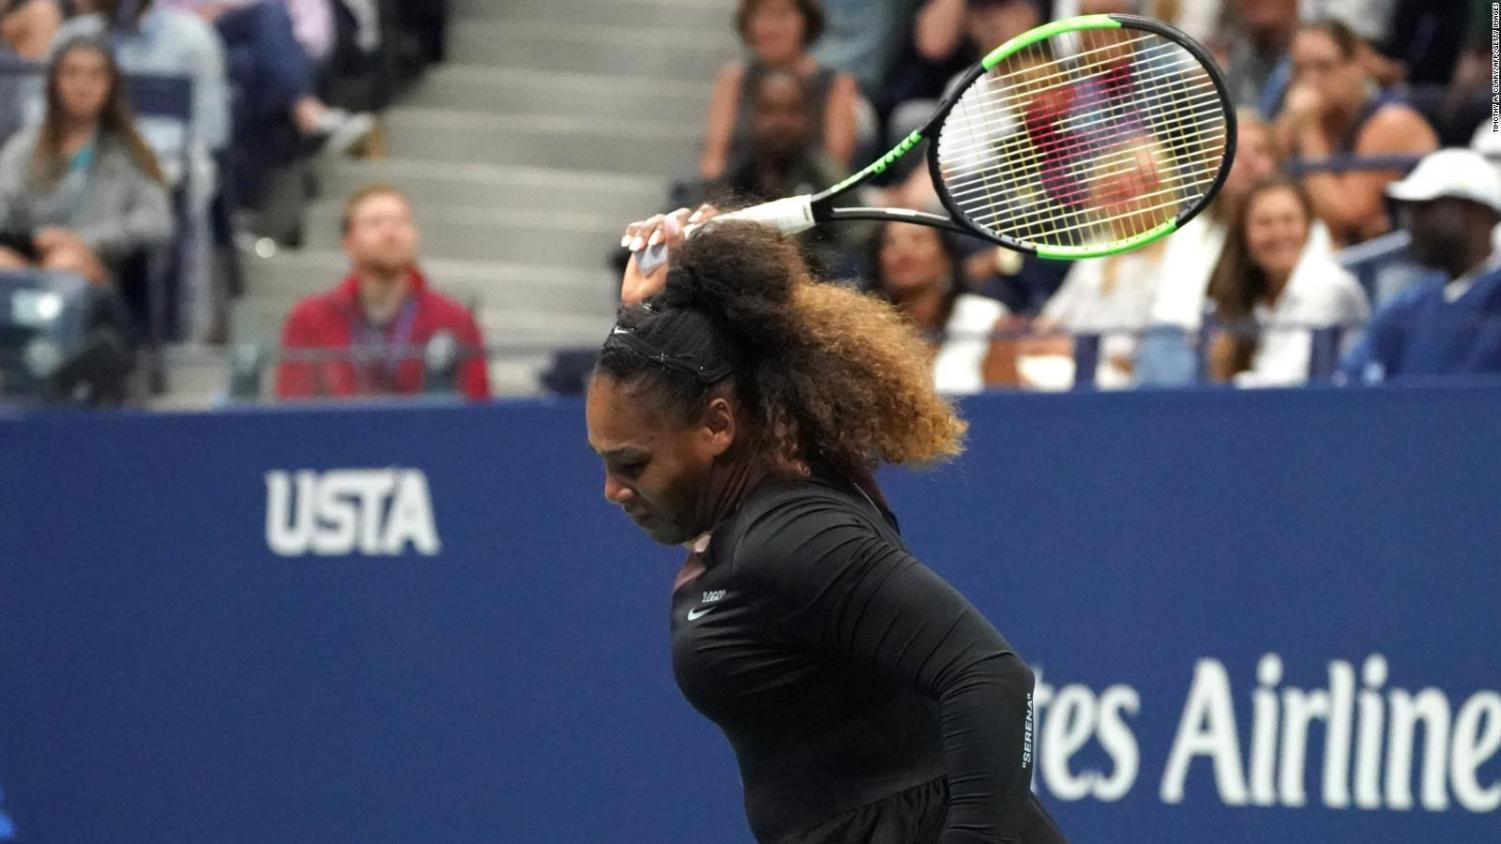 Williams broke her racket out of frustration when she was issued penalties during the U.S. Open final match.